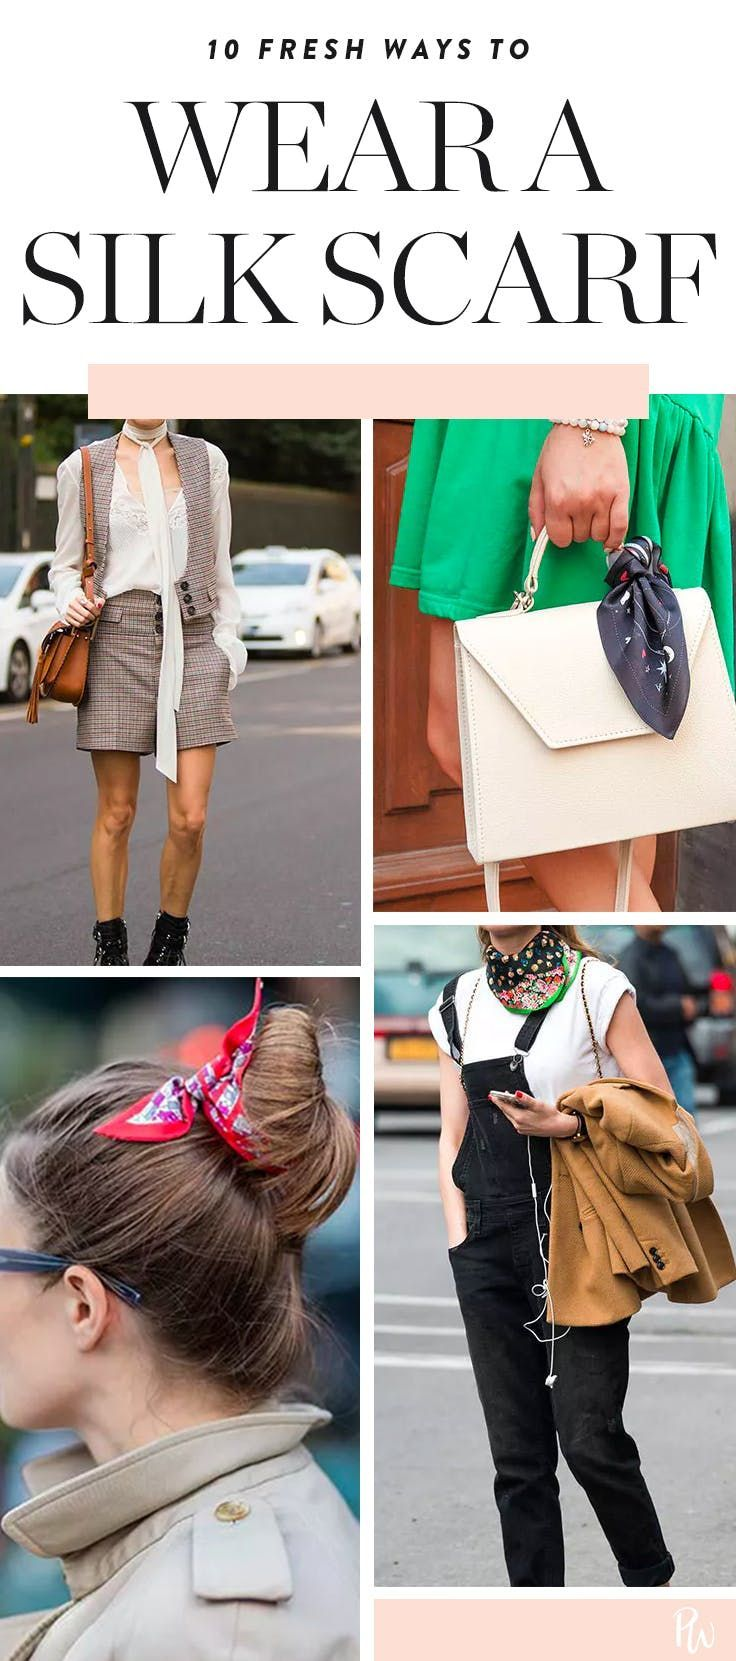 10 Fresh Ways to Wear a Silk Scarf – #